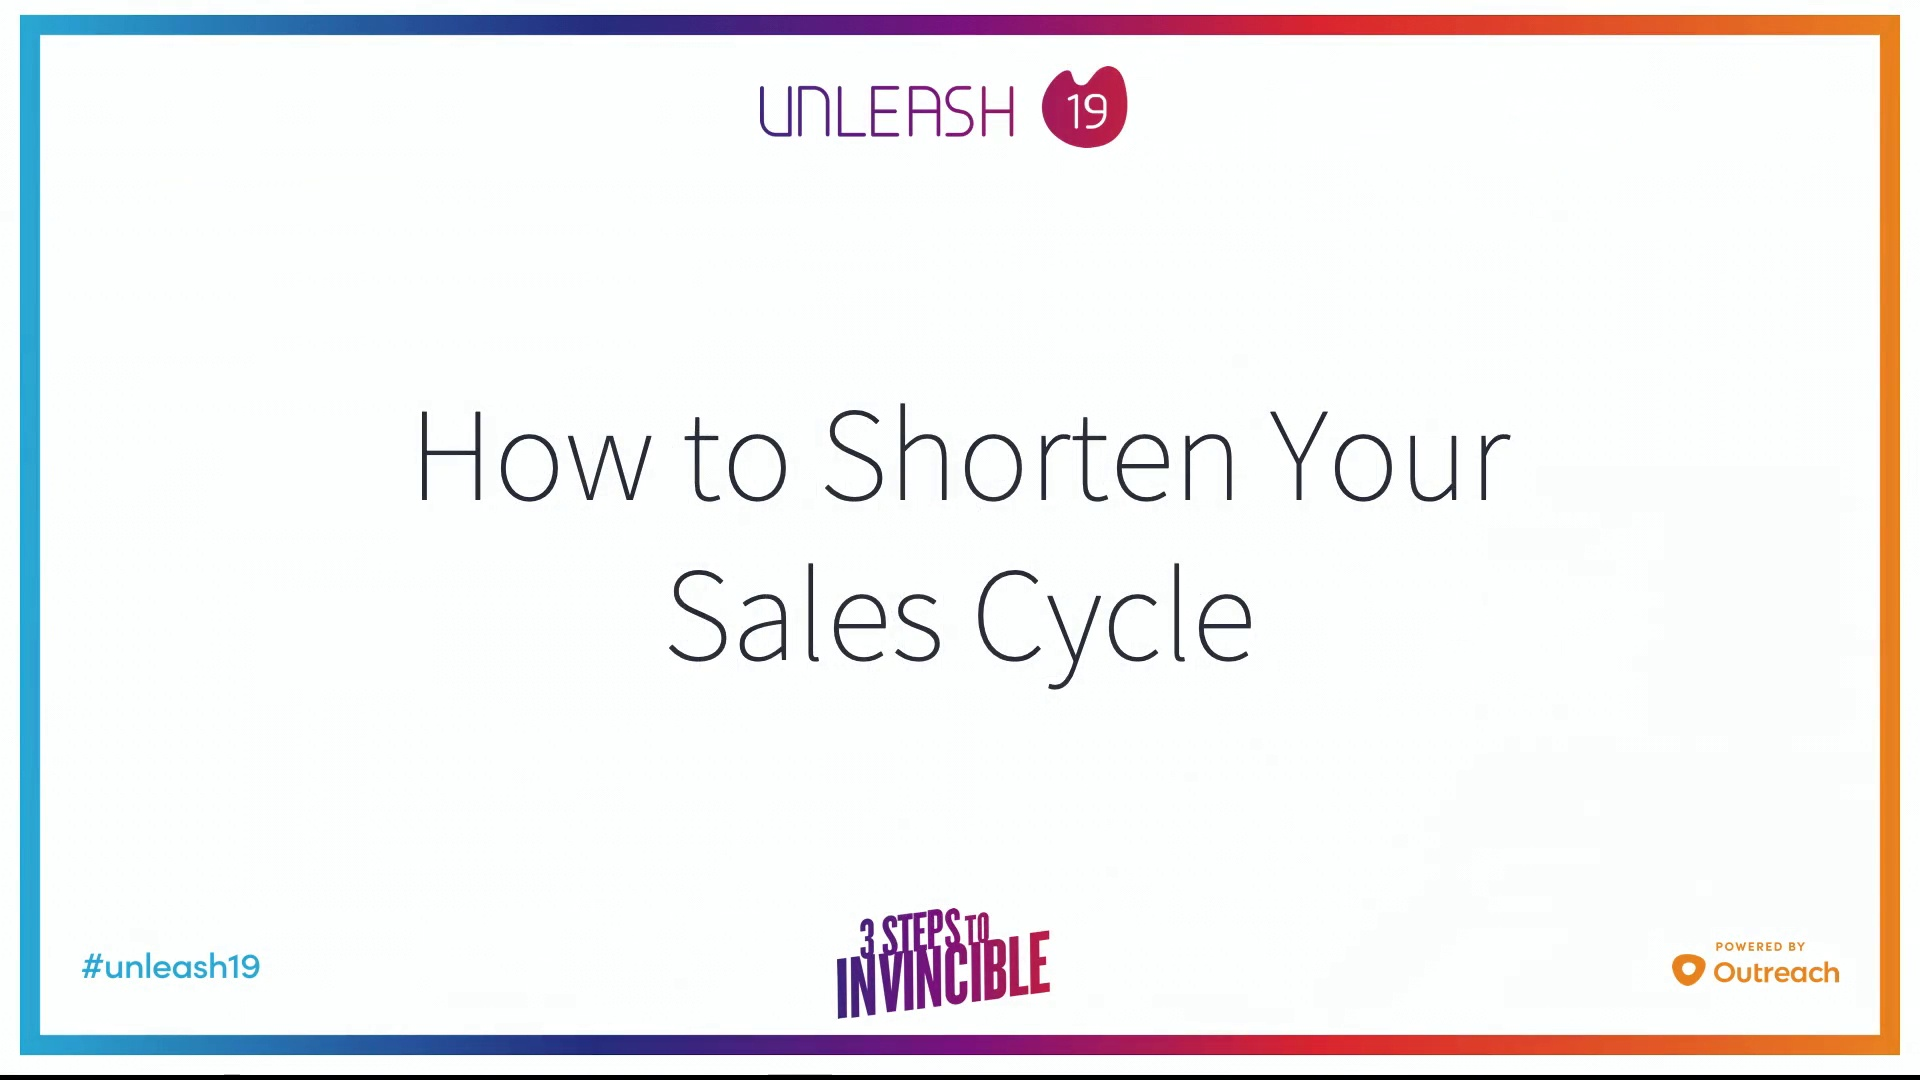 How to Shorten Your Sales Cycle - David Gerhardt, Jeff Winters, Marty Enns, Christie Nelson